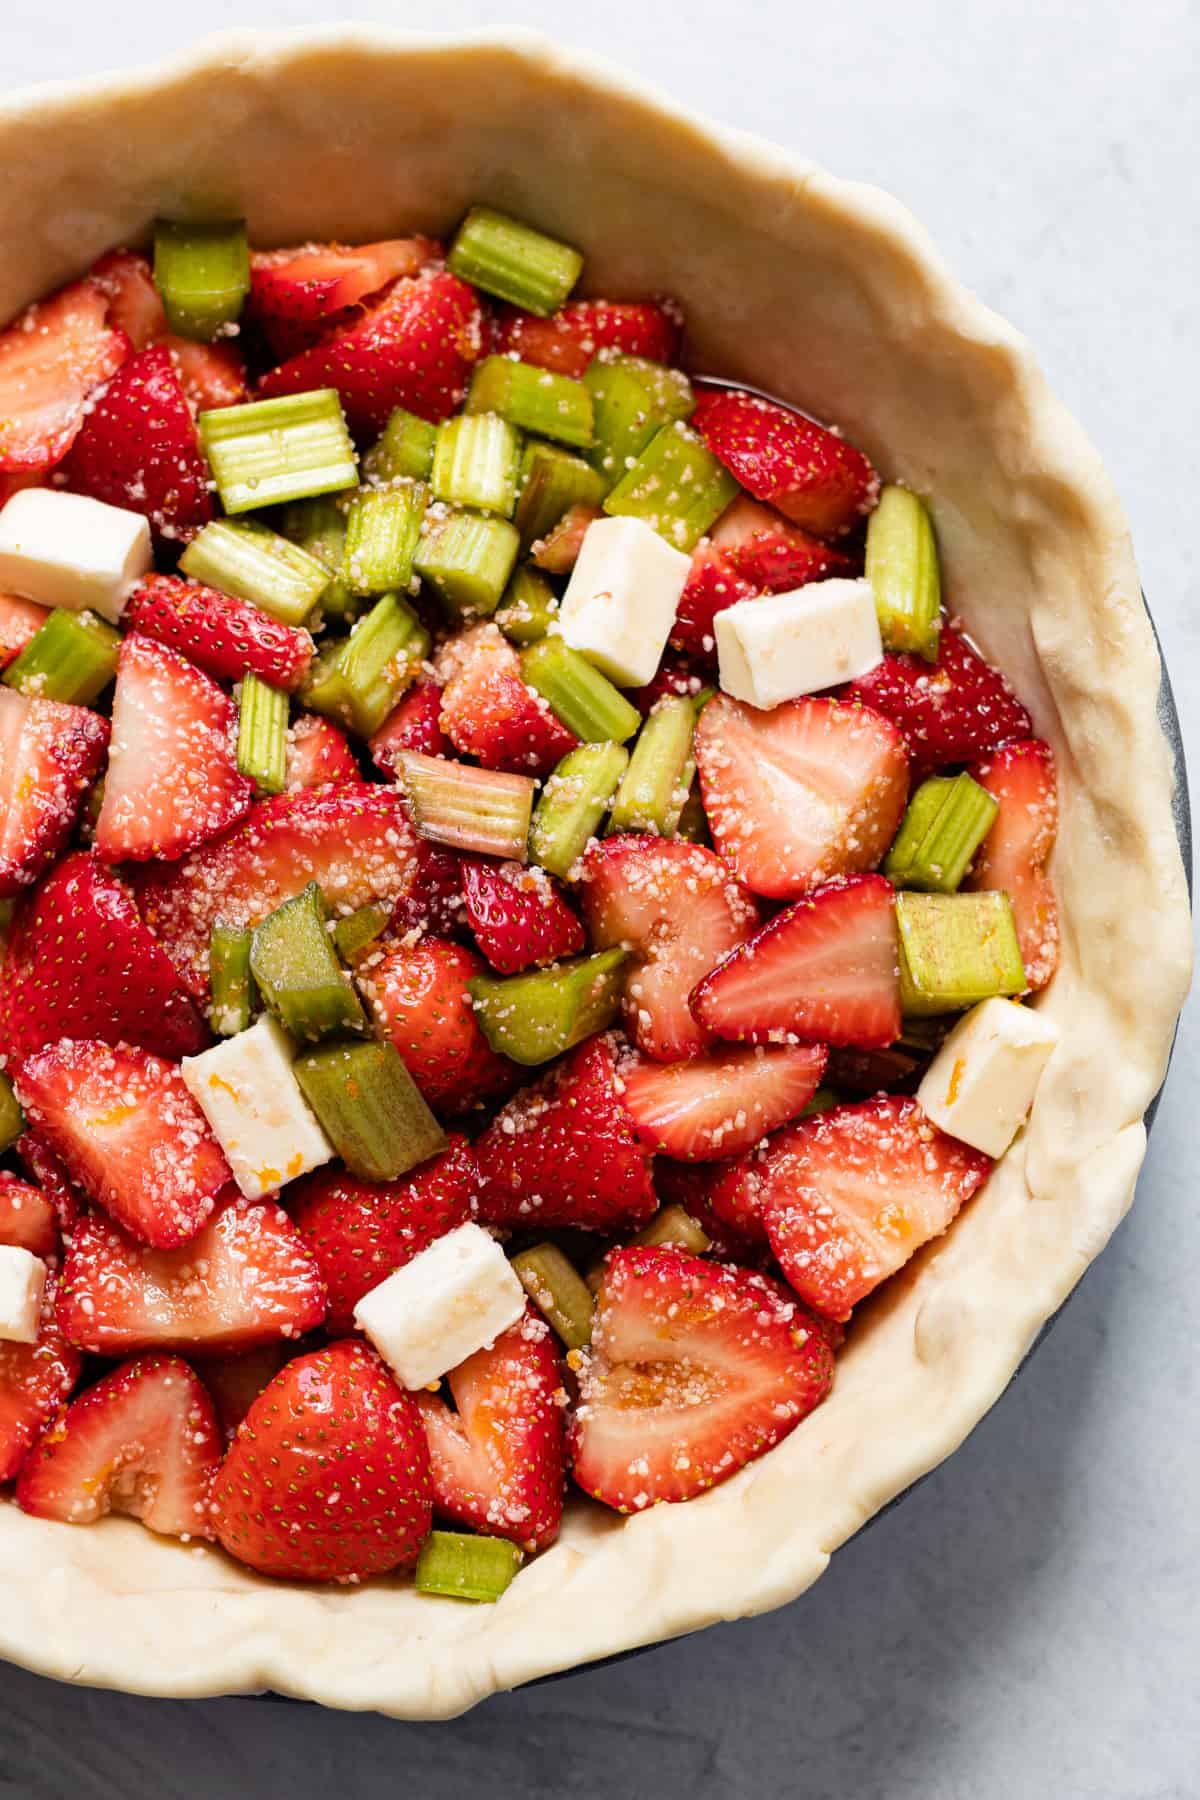 Strawberry rhubarb filling in an unbaked pie shell.